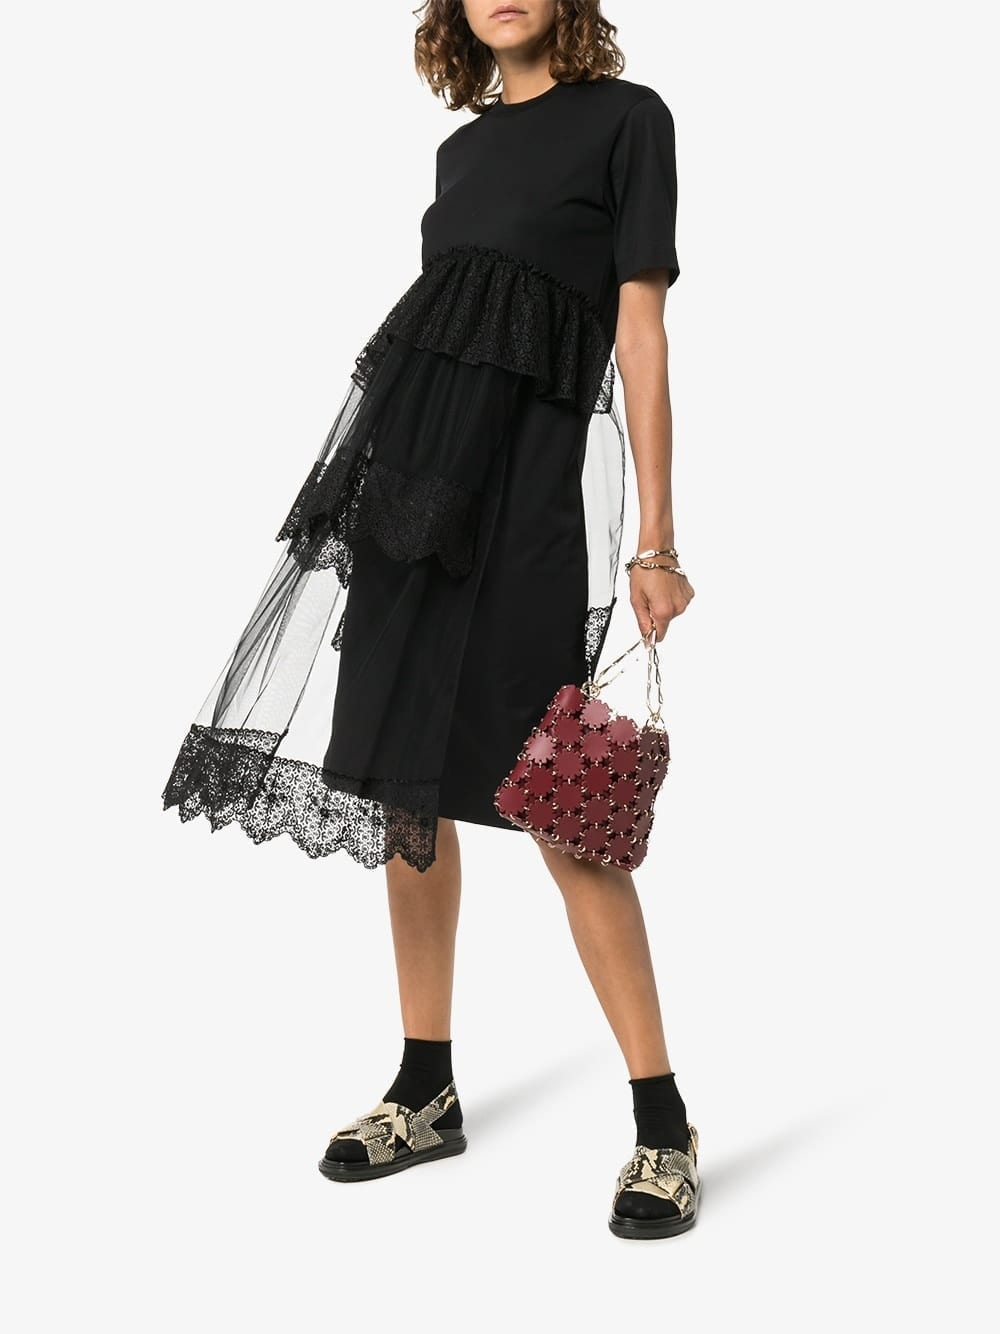 SIMONE ROCHA Lace Detail Tiered Midi Dress